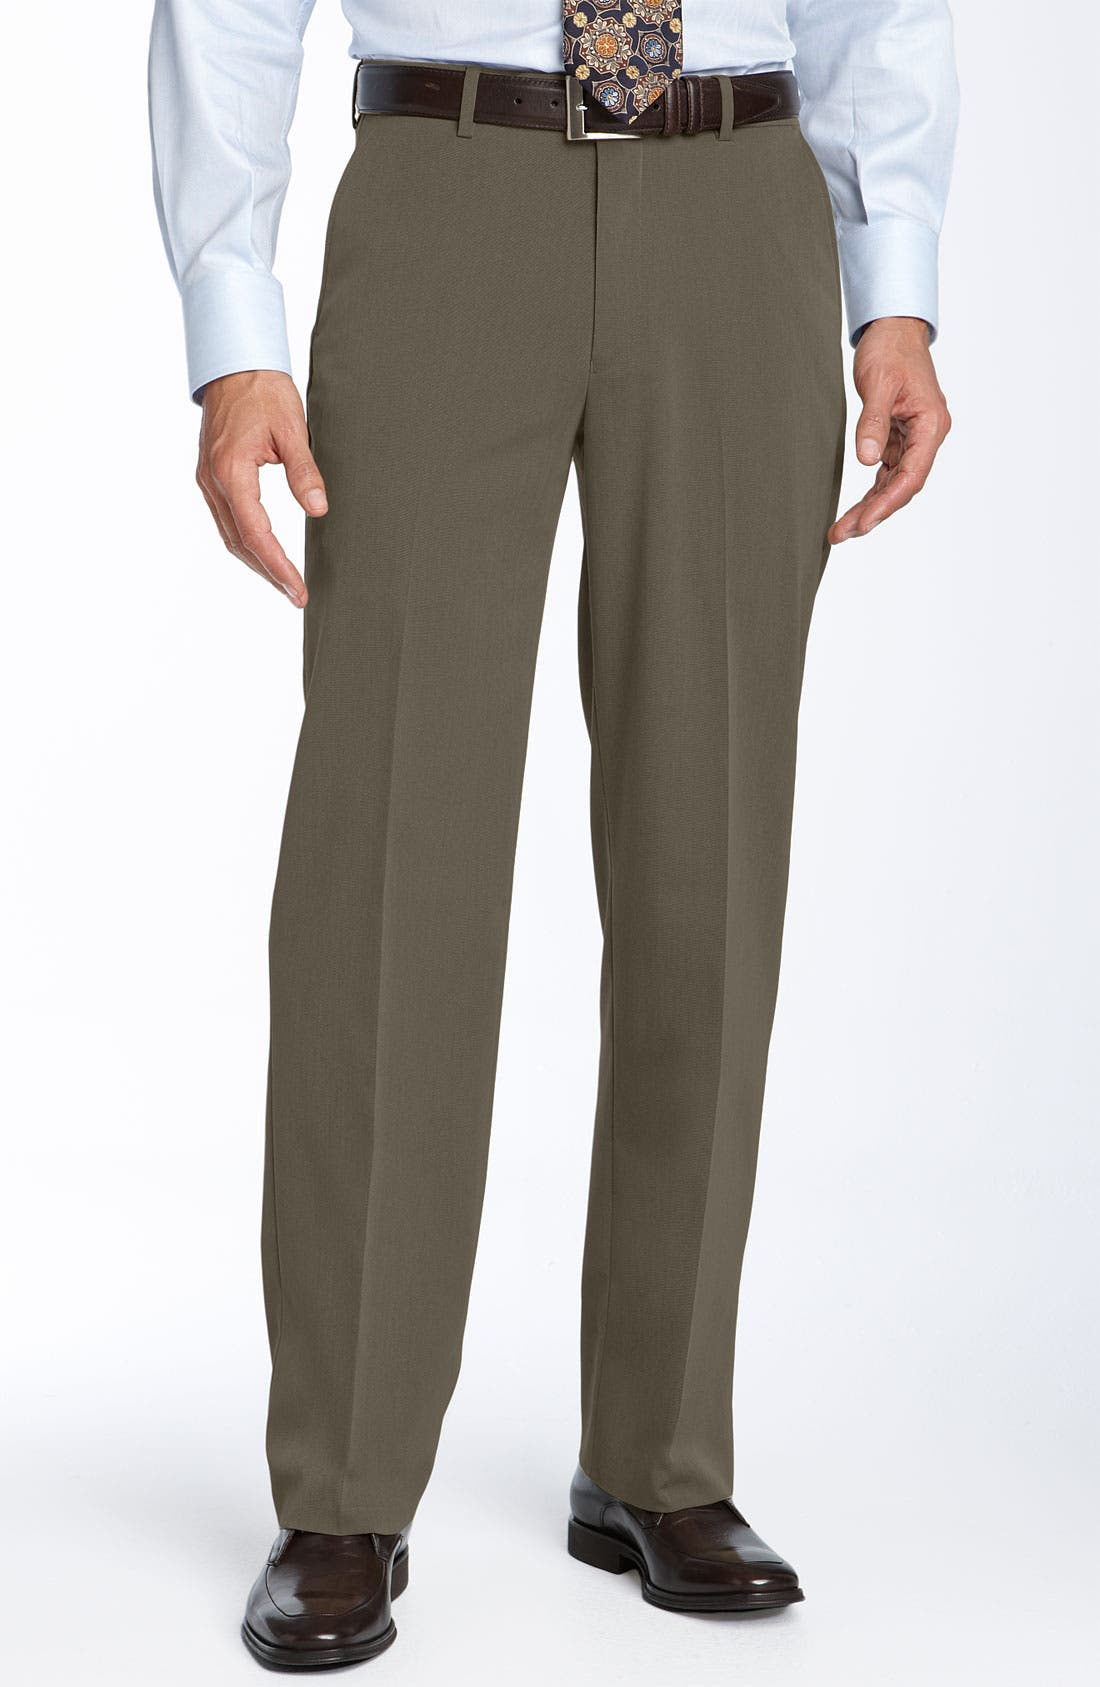 Alternate Image 1 Selected - Ballin Comfort EZE Flat Front Trousers